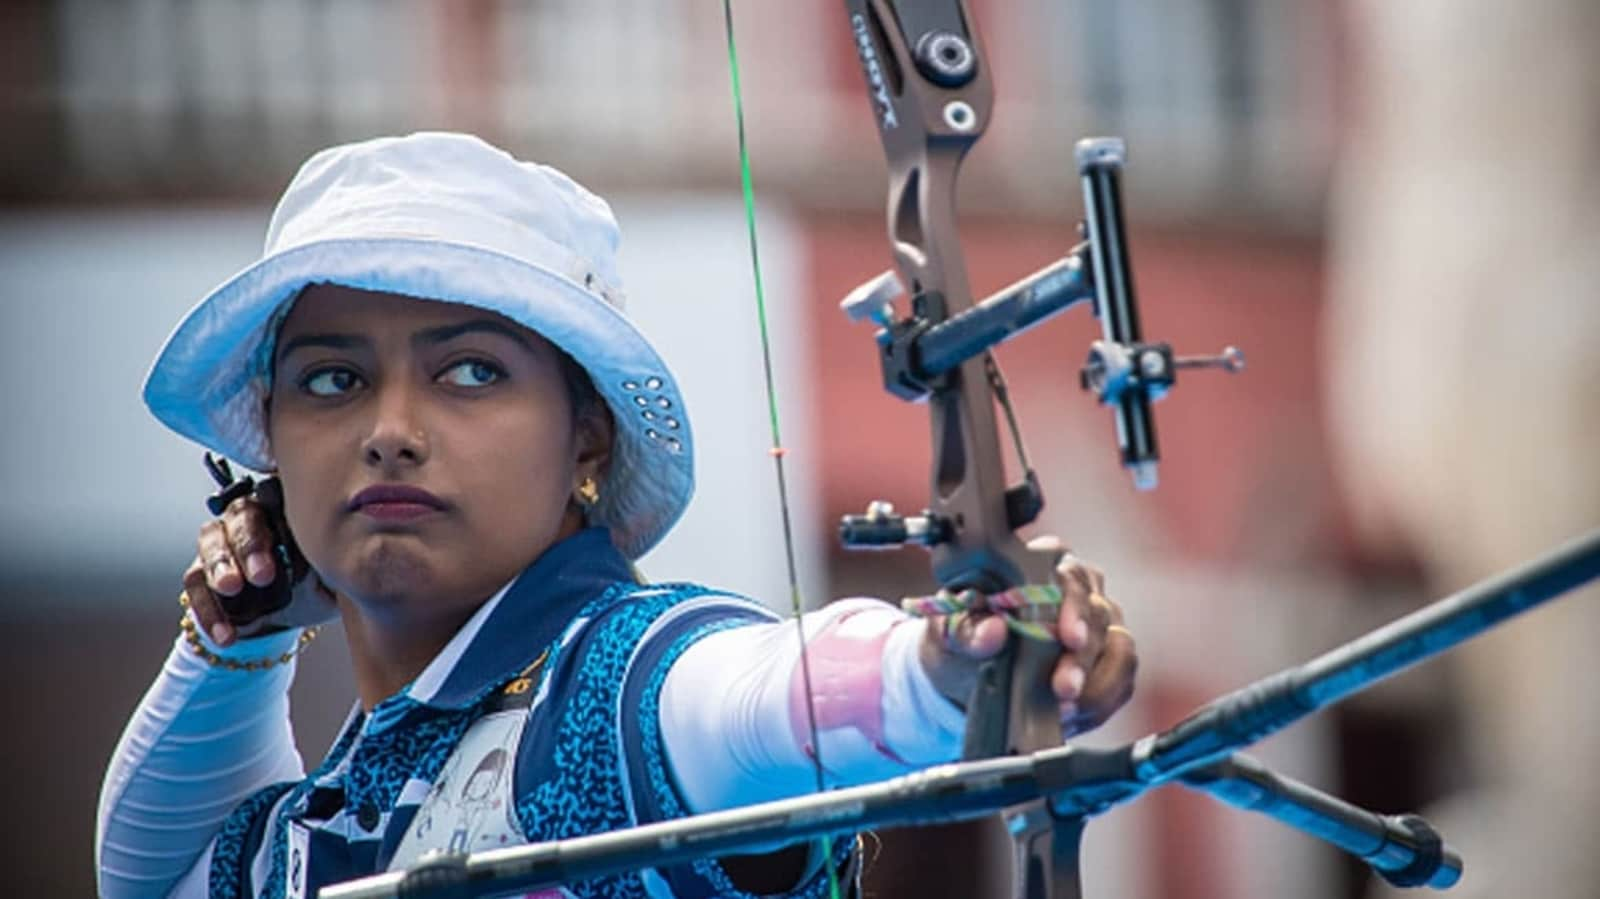 Archery: Deepika on target, gold rush for India at World Cup Stage 3 -  Hindustan Times